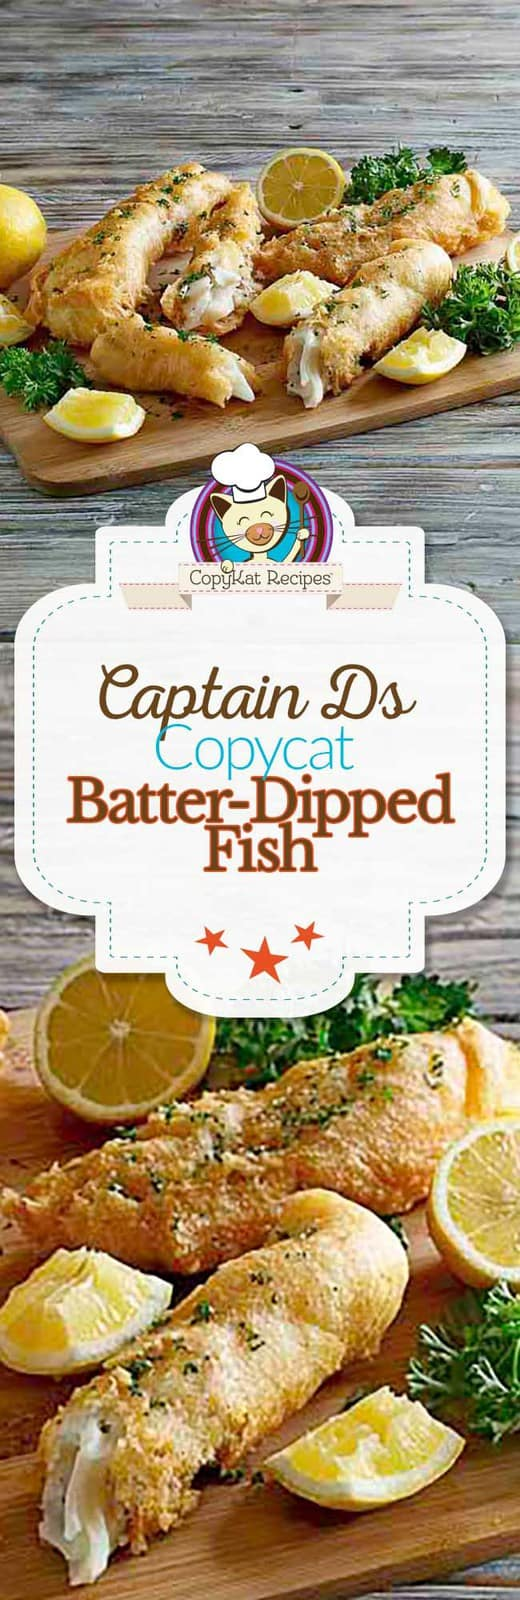 You can recreate Captain Ds Batter Dipped fish at home when you use this copycat recipe.